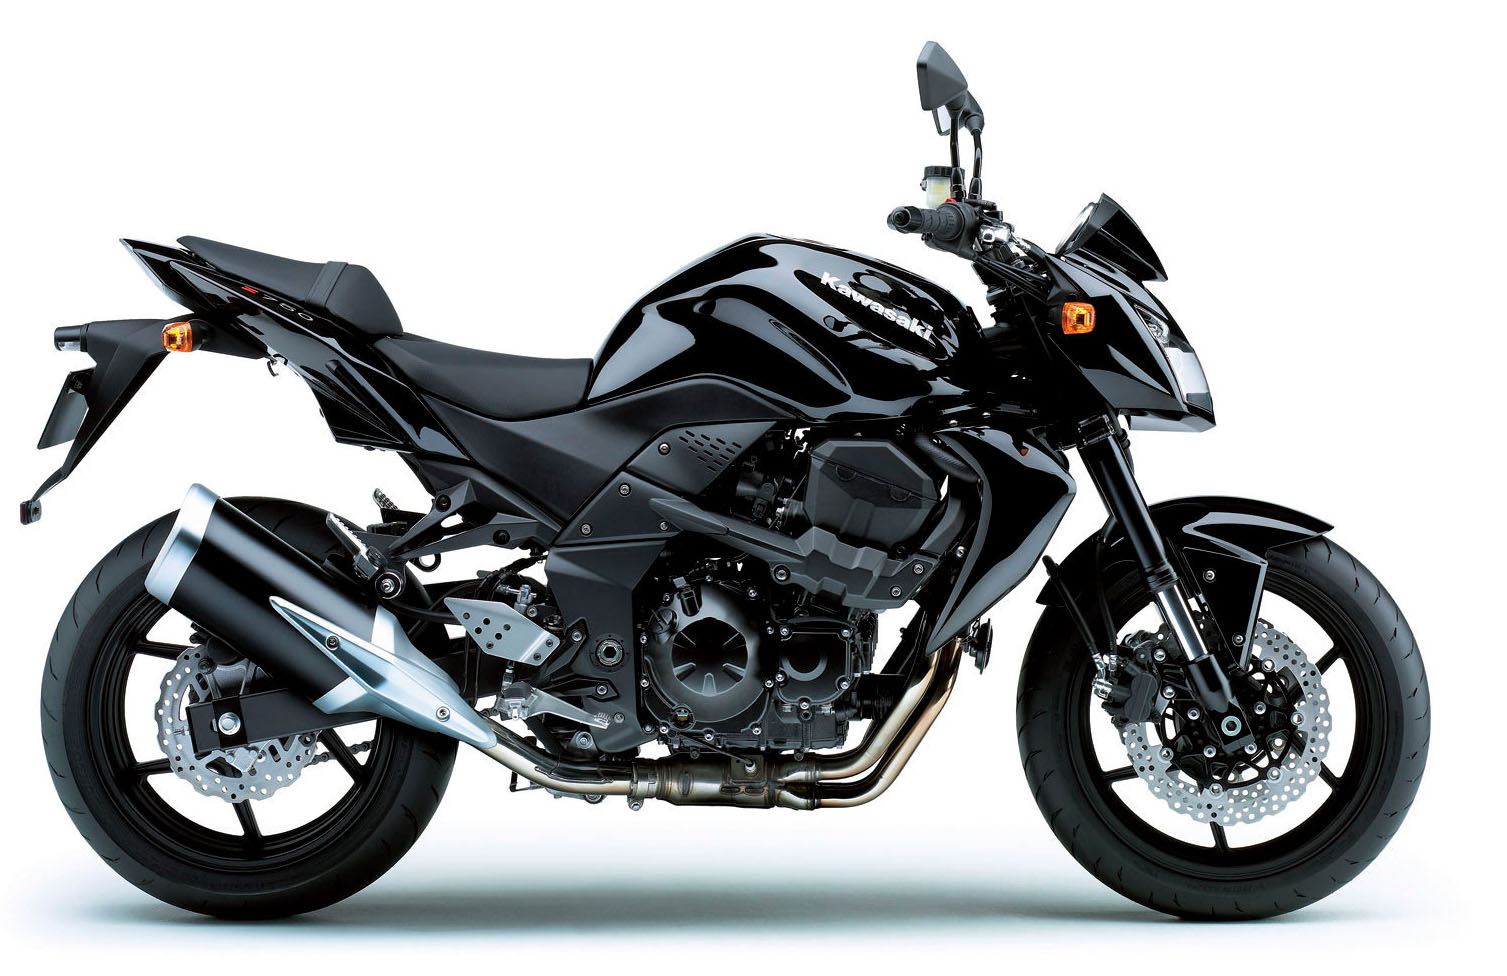 Kawasaki Z 750 For Sale Specifications, Price and Images